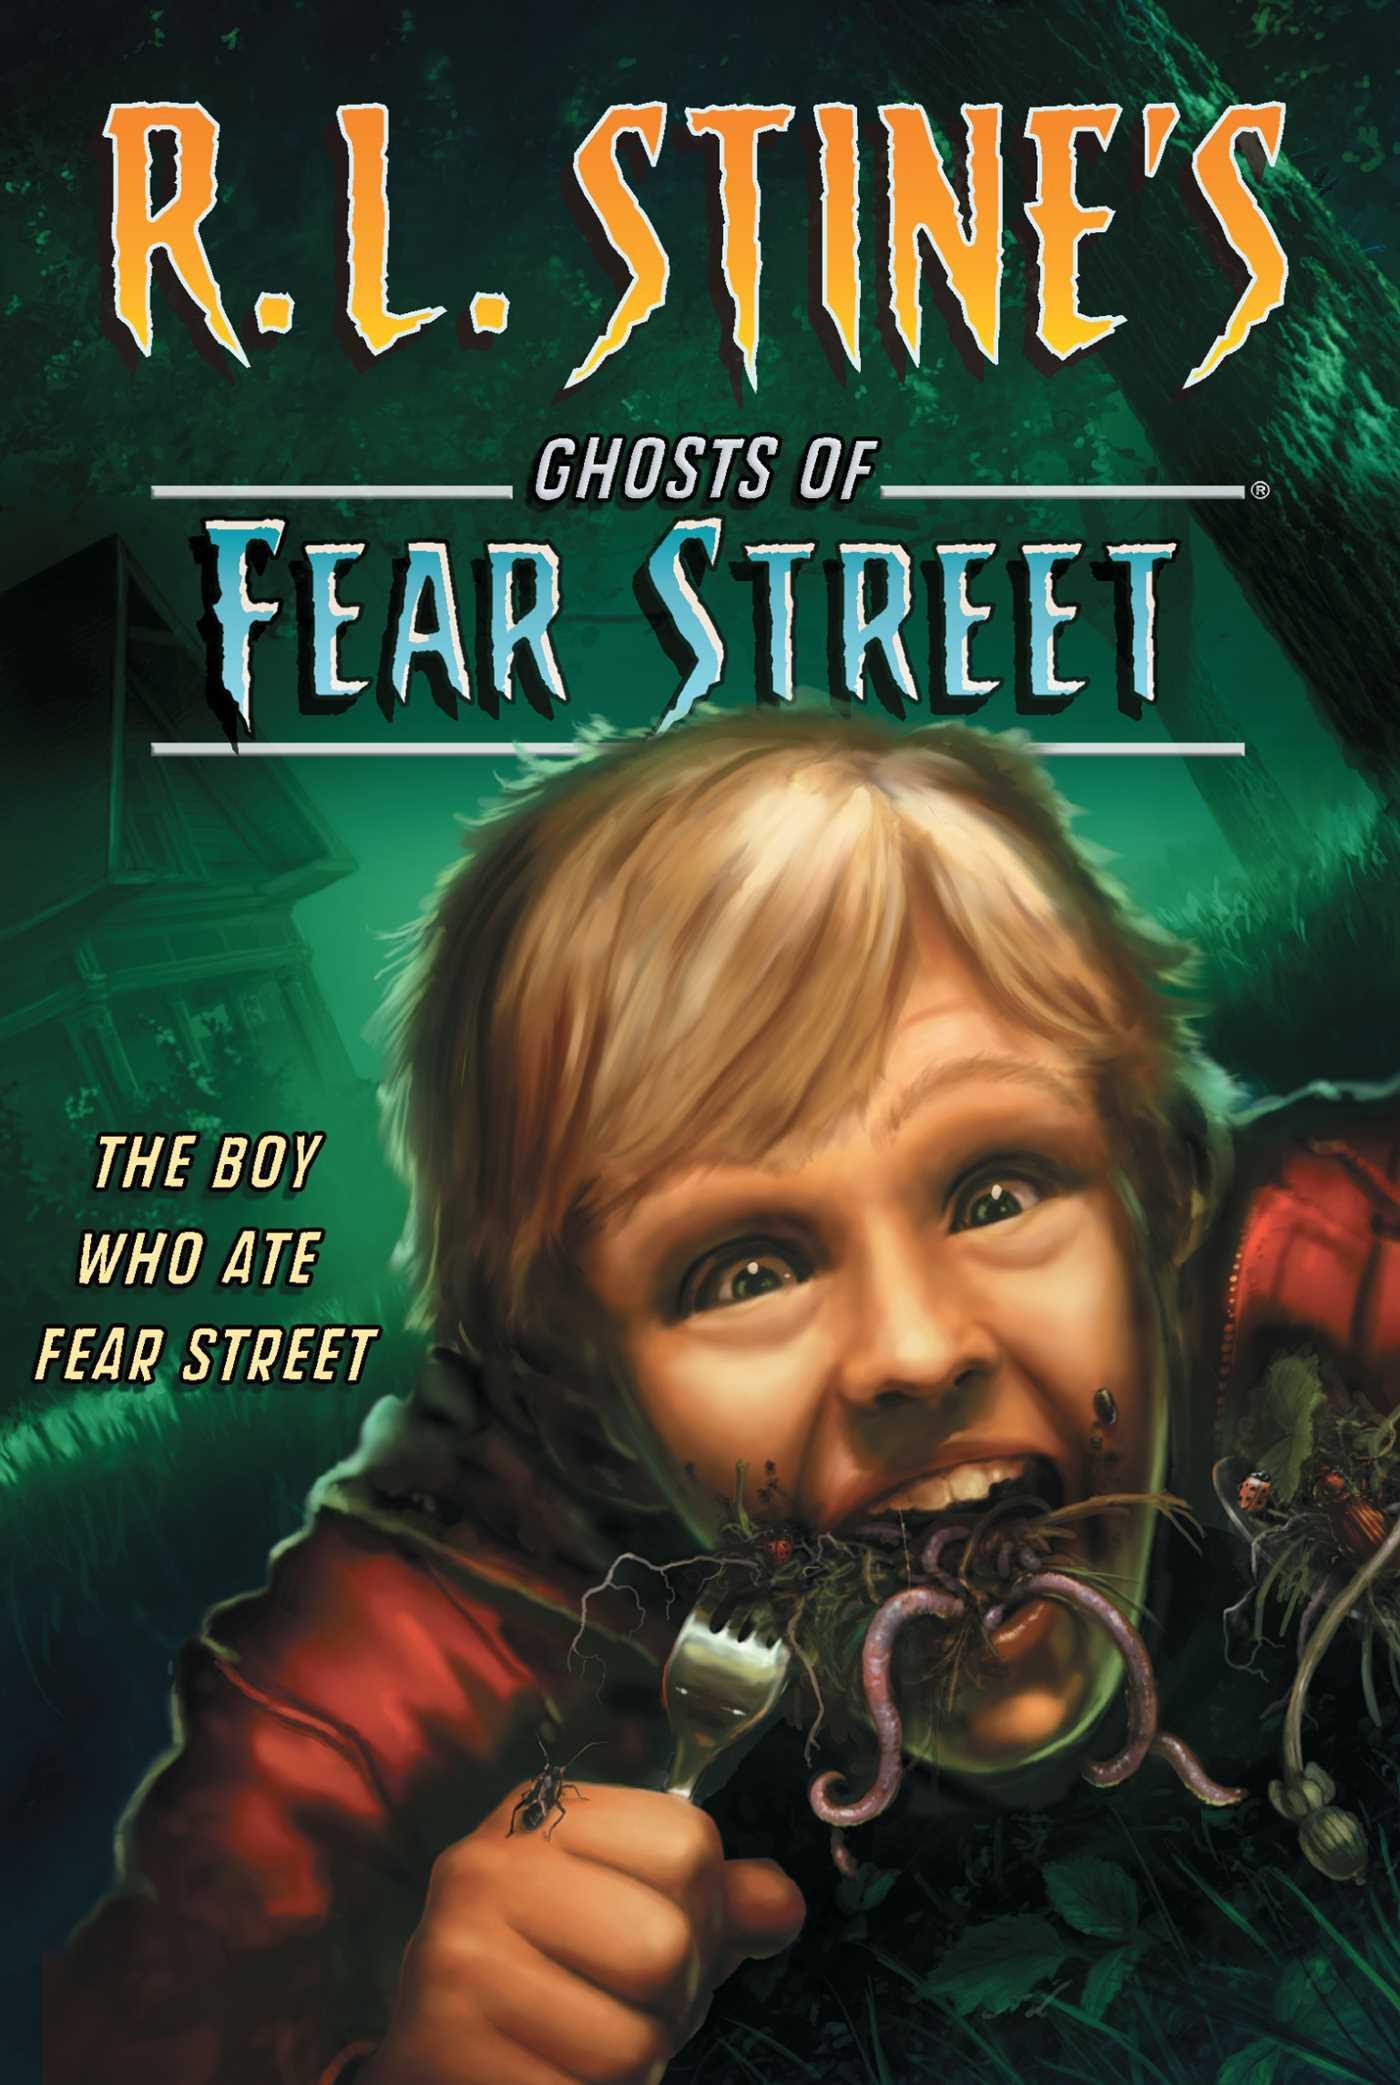 The-boy-who-ate-fear-street-9781442486164_hr